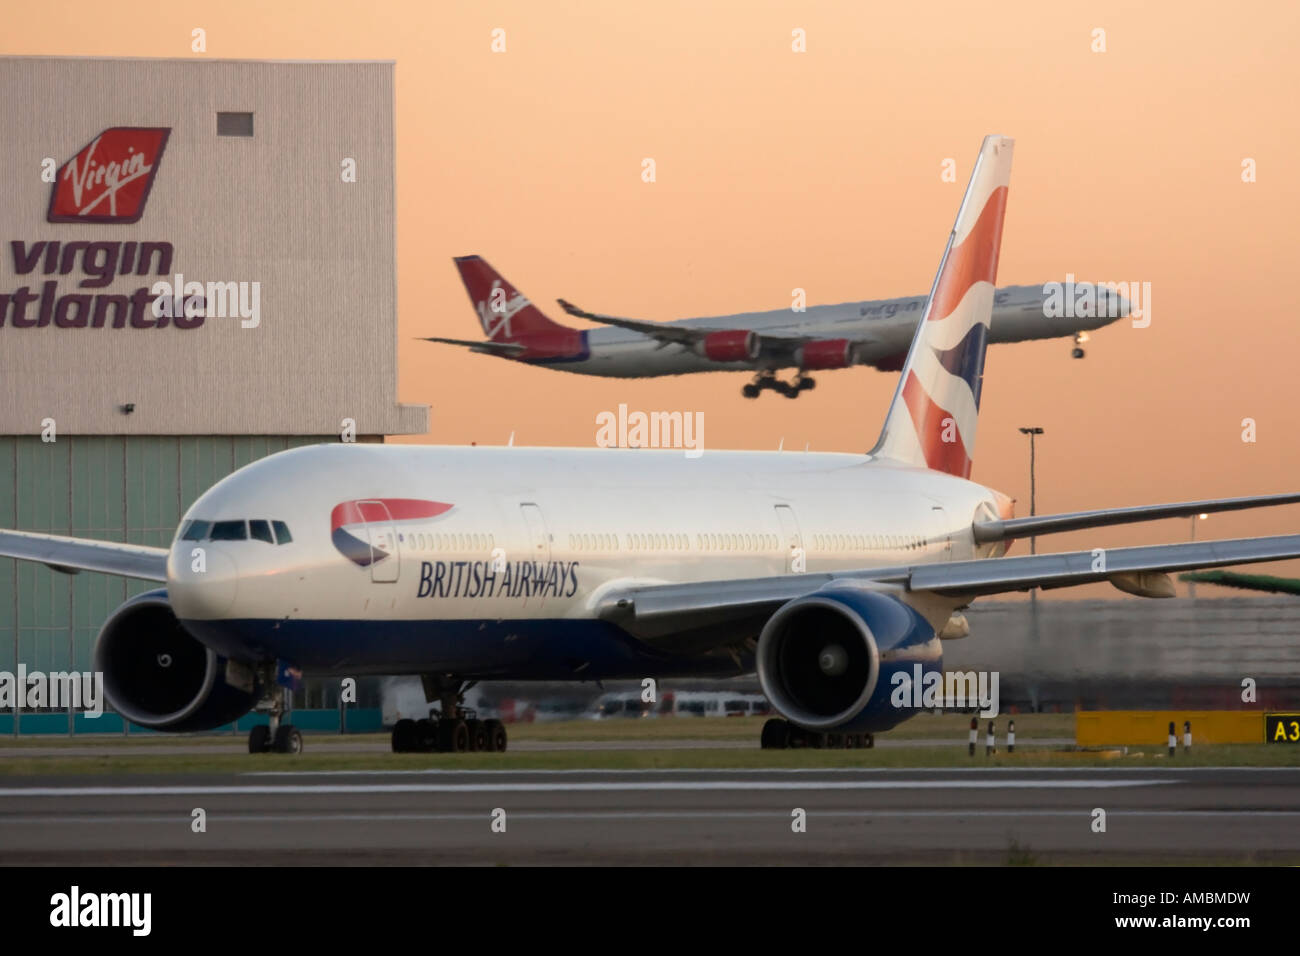 British airways boeing 777 taxiing for departure while virgin stock british airways boeing 777 taxiing for departure while virgin atlantic airbus a340 landing in the background heathrow airport uk publicscrutiny Image collections